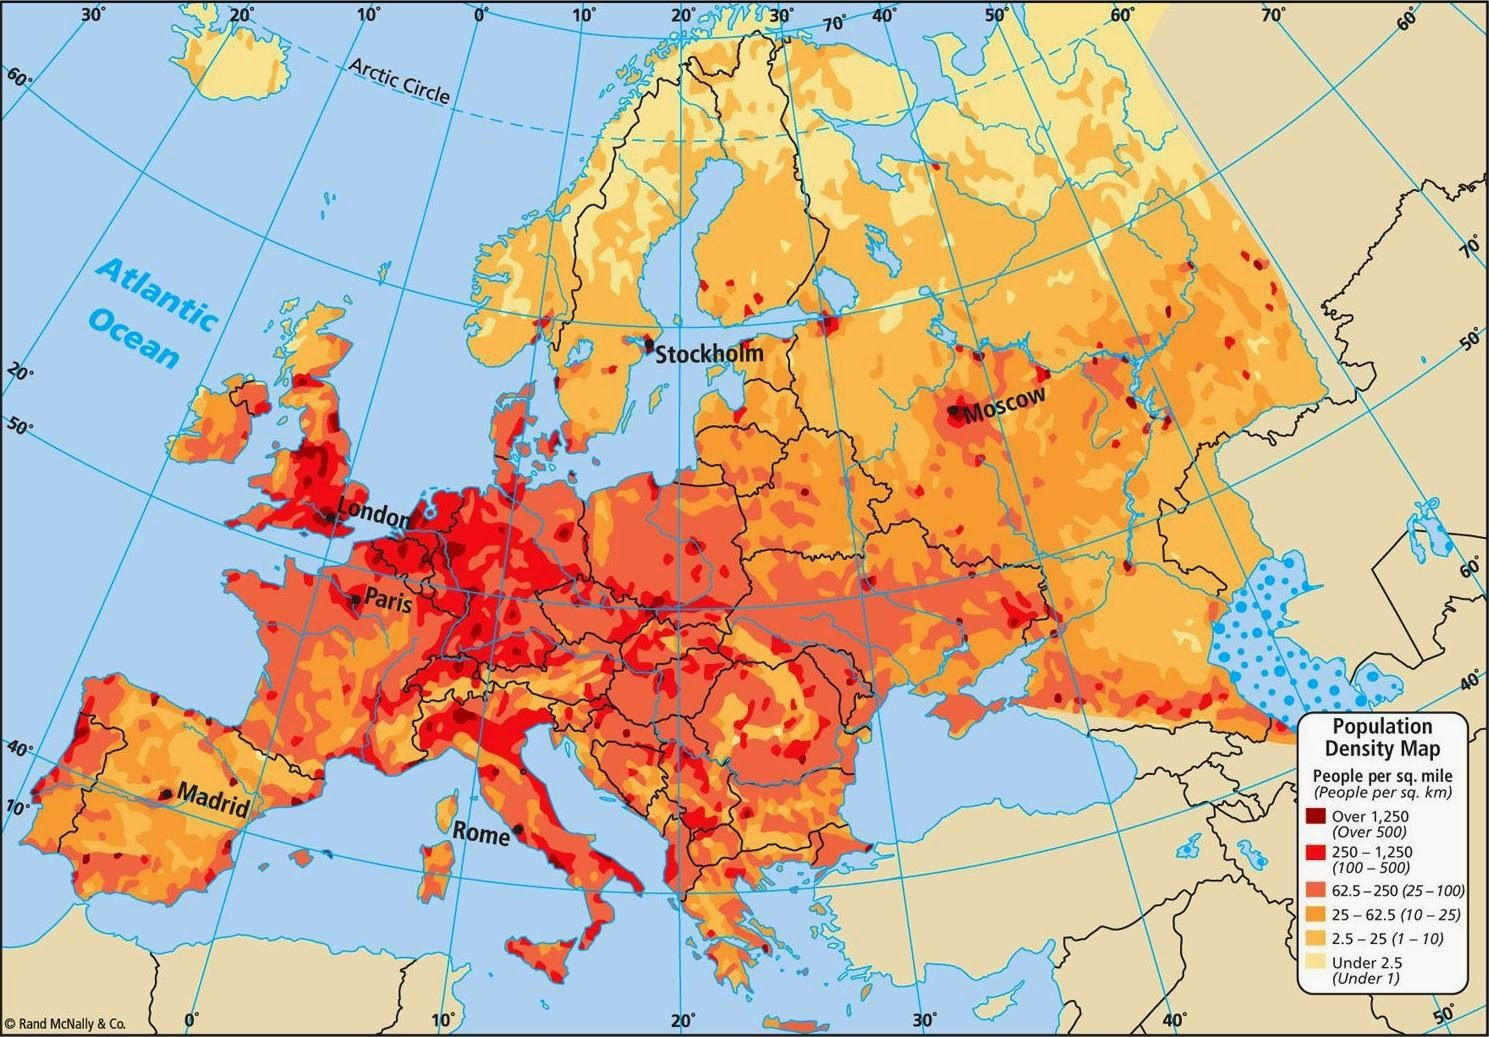 Europe Population Density Map Pinterest